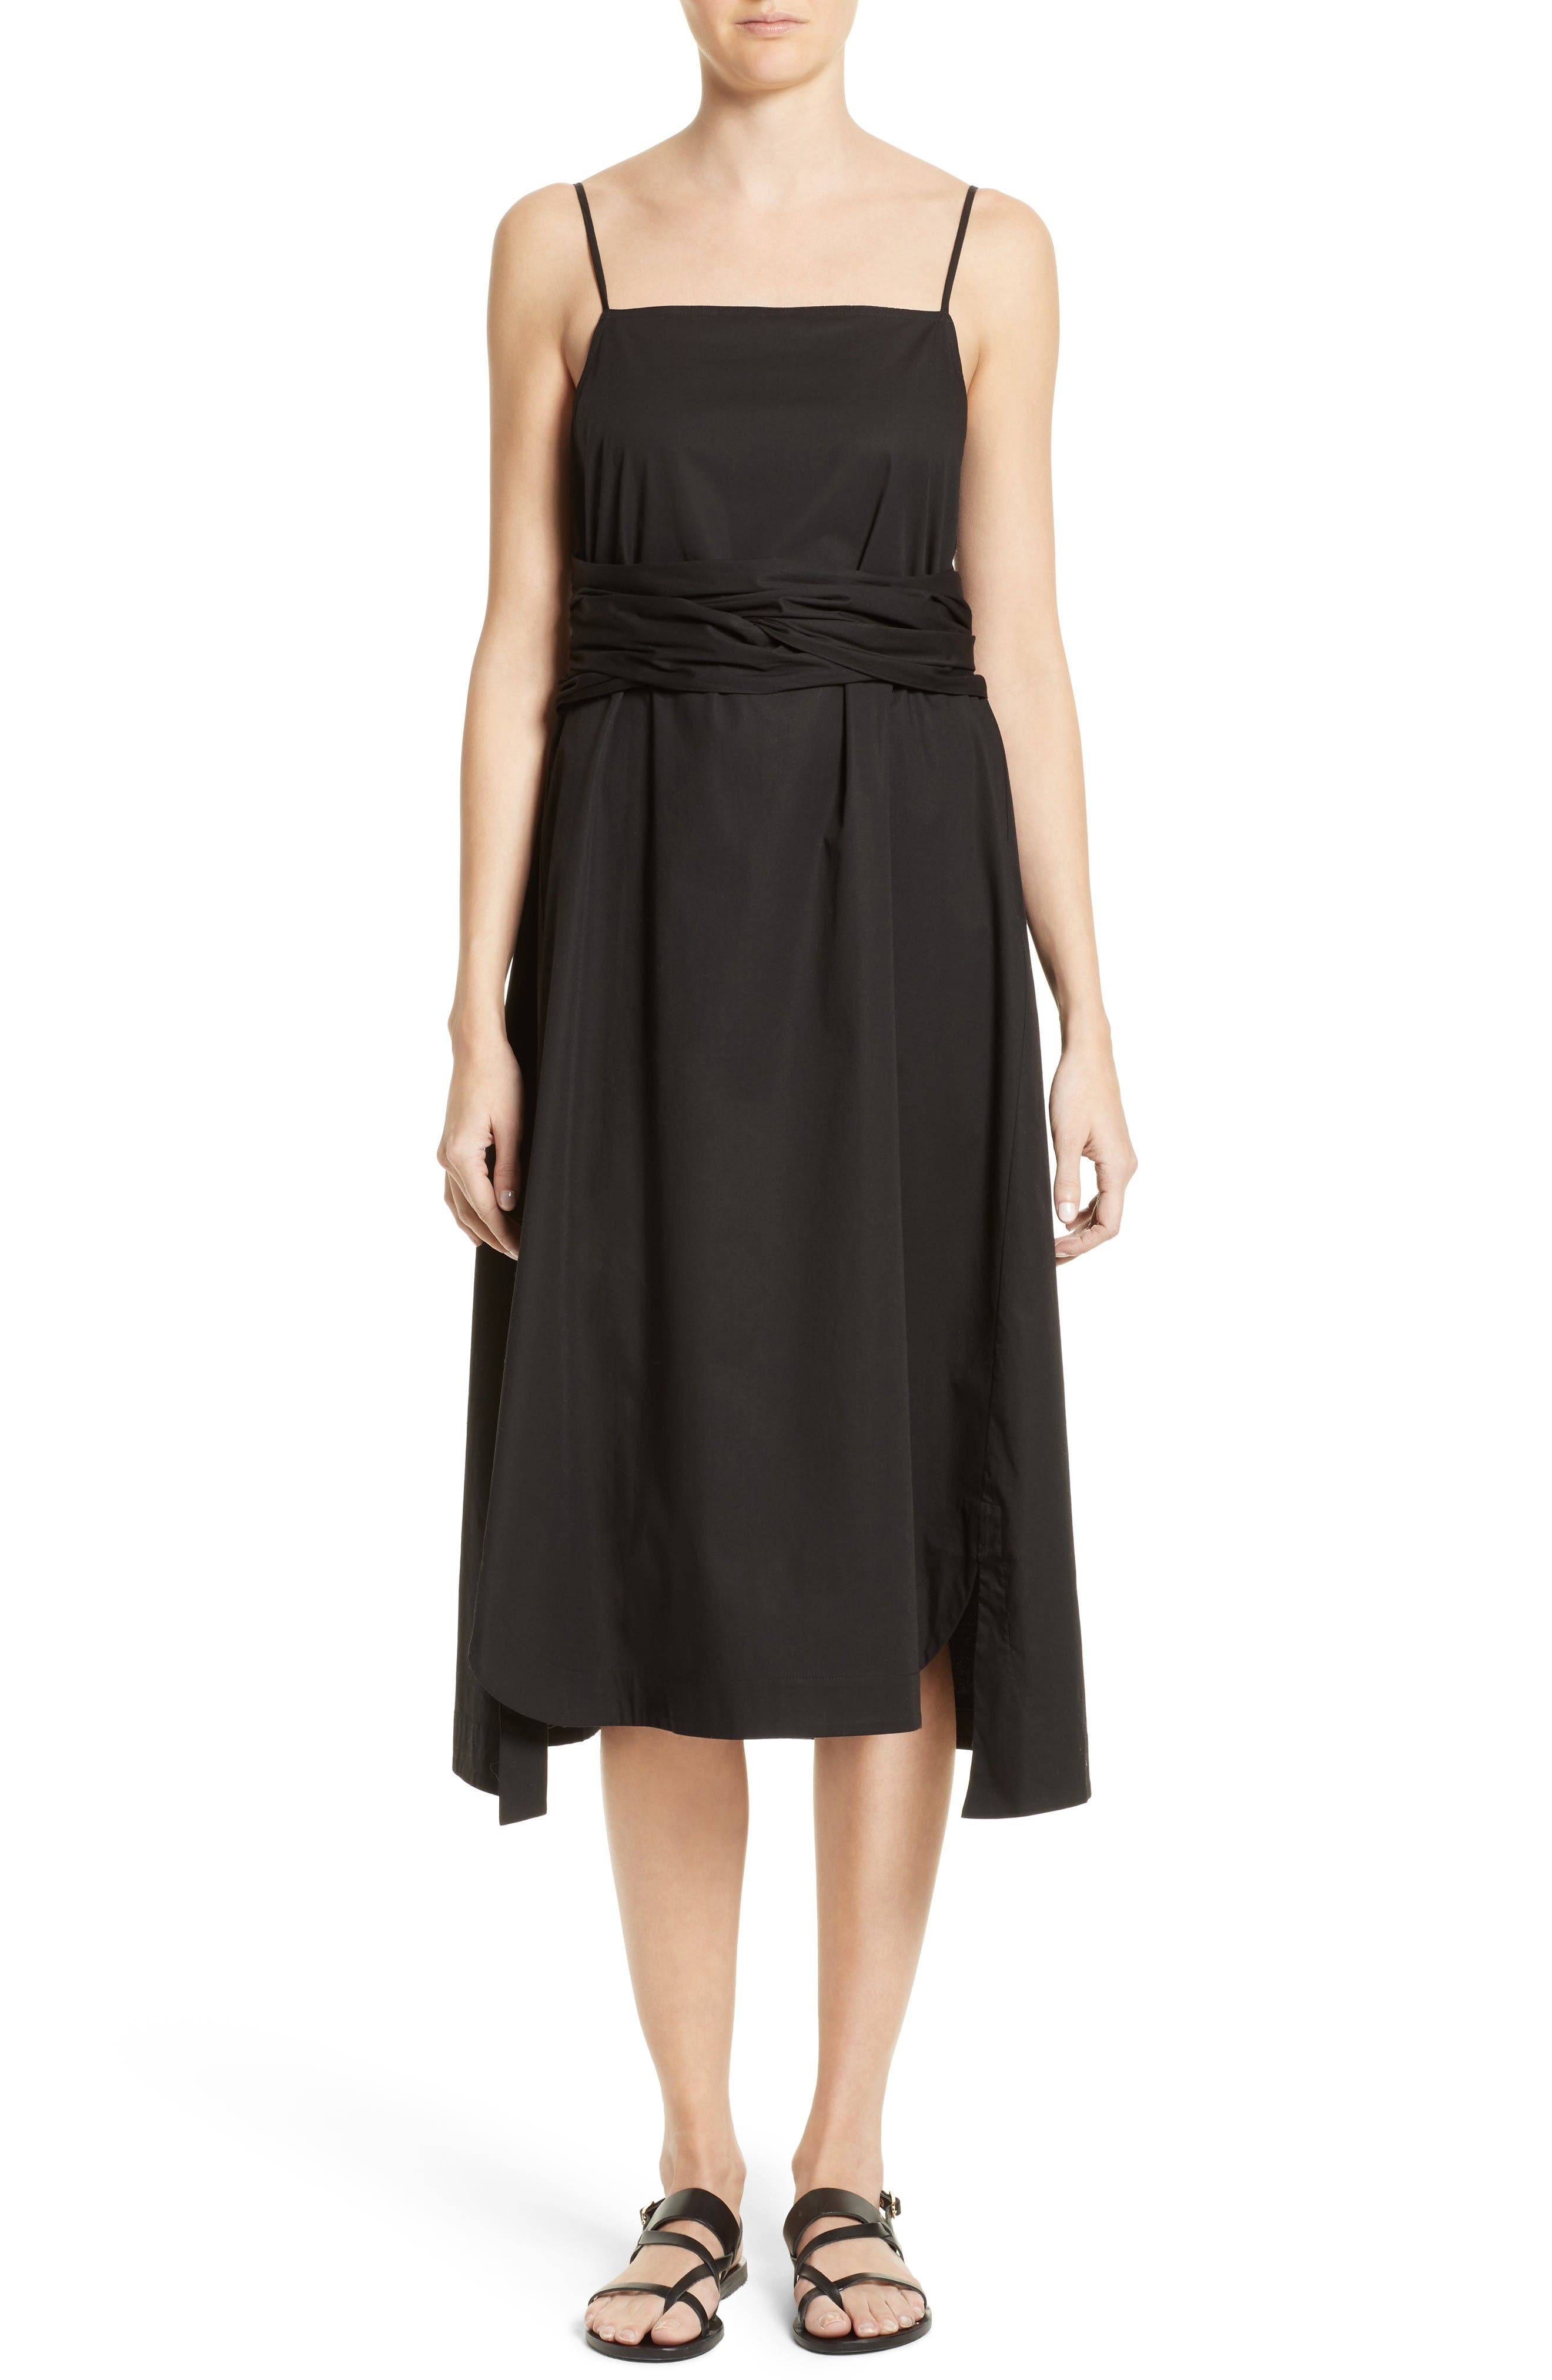 Elizabeth and James Oak Tie Waist Dress